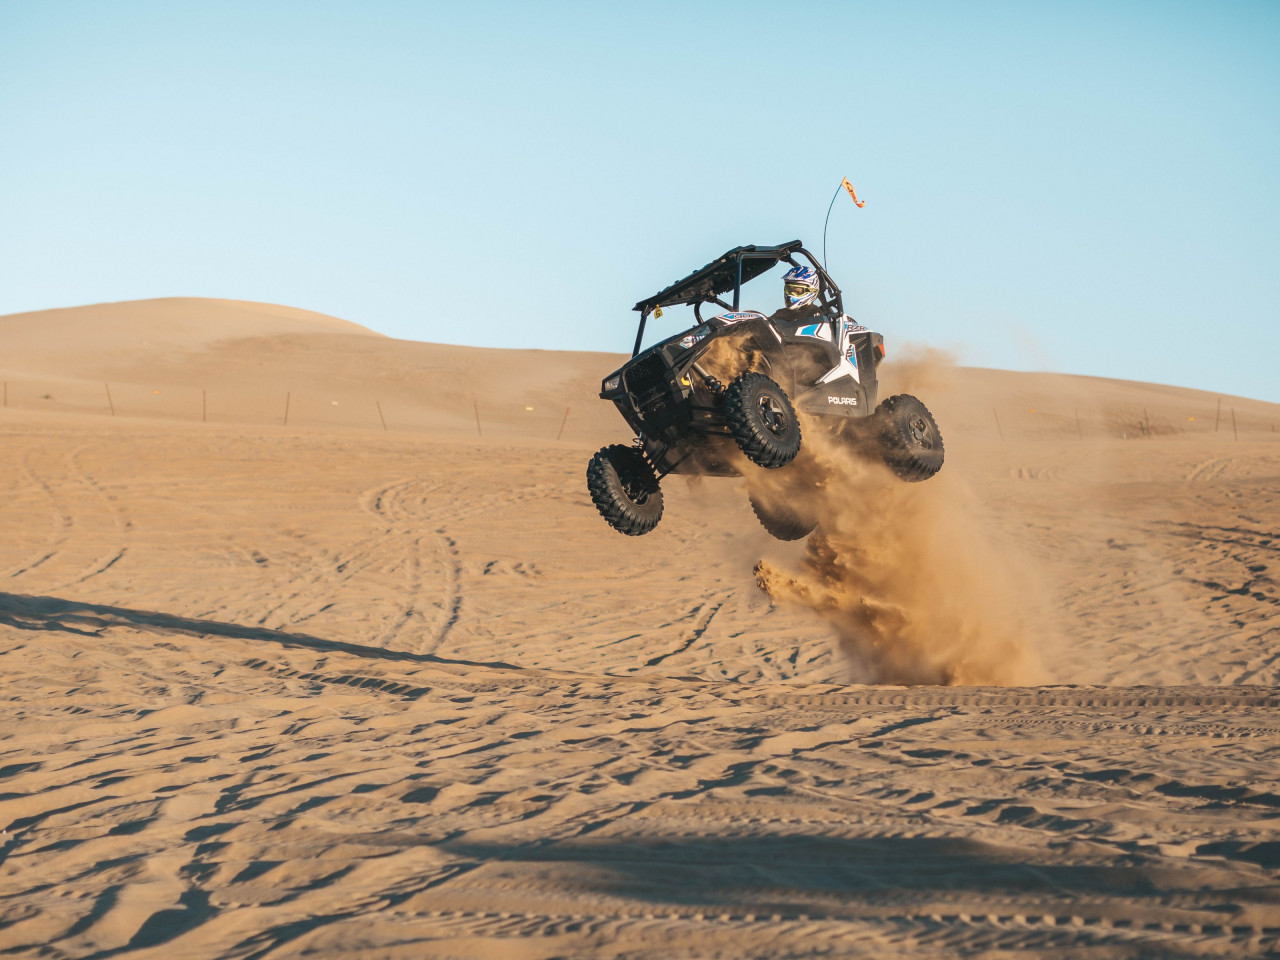 With ATV on the the sand dunes wallpaper 1280x960